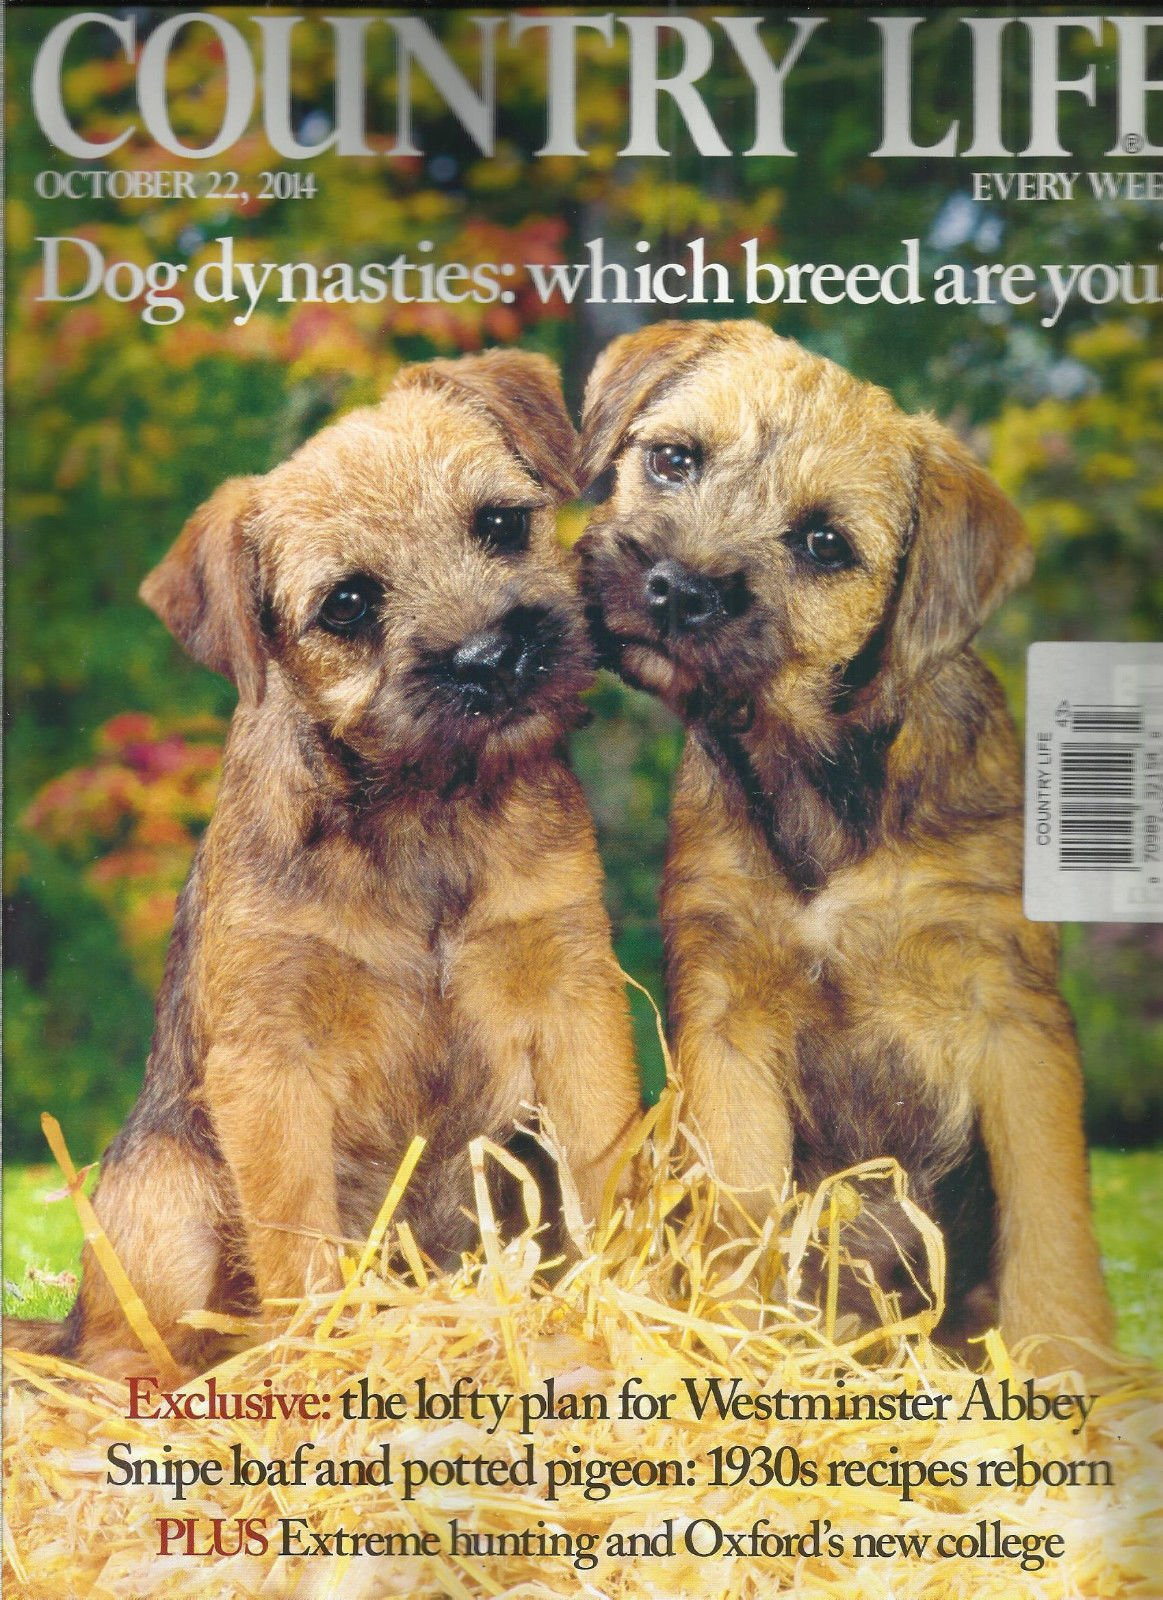 COUNTRY LIFE, EVERY WEEK, OCTOBER, 22nd 2014 (DOG DYNASTIES: WHICH BREED ARE